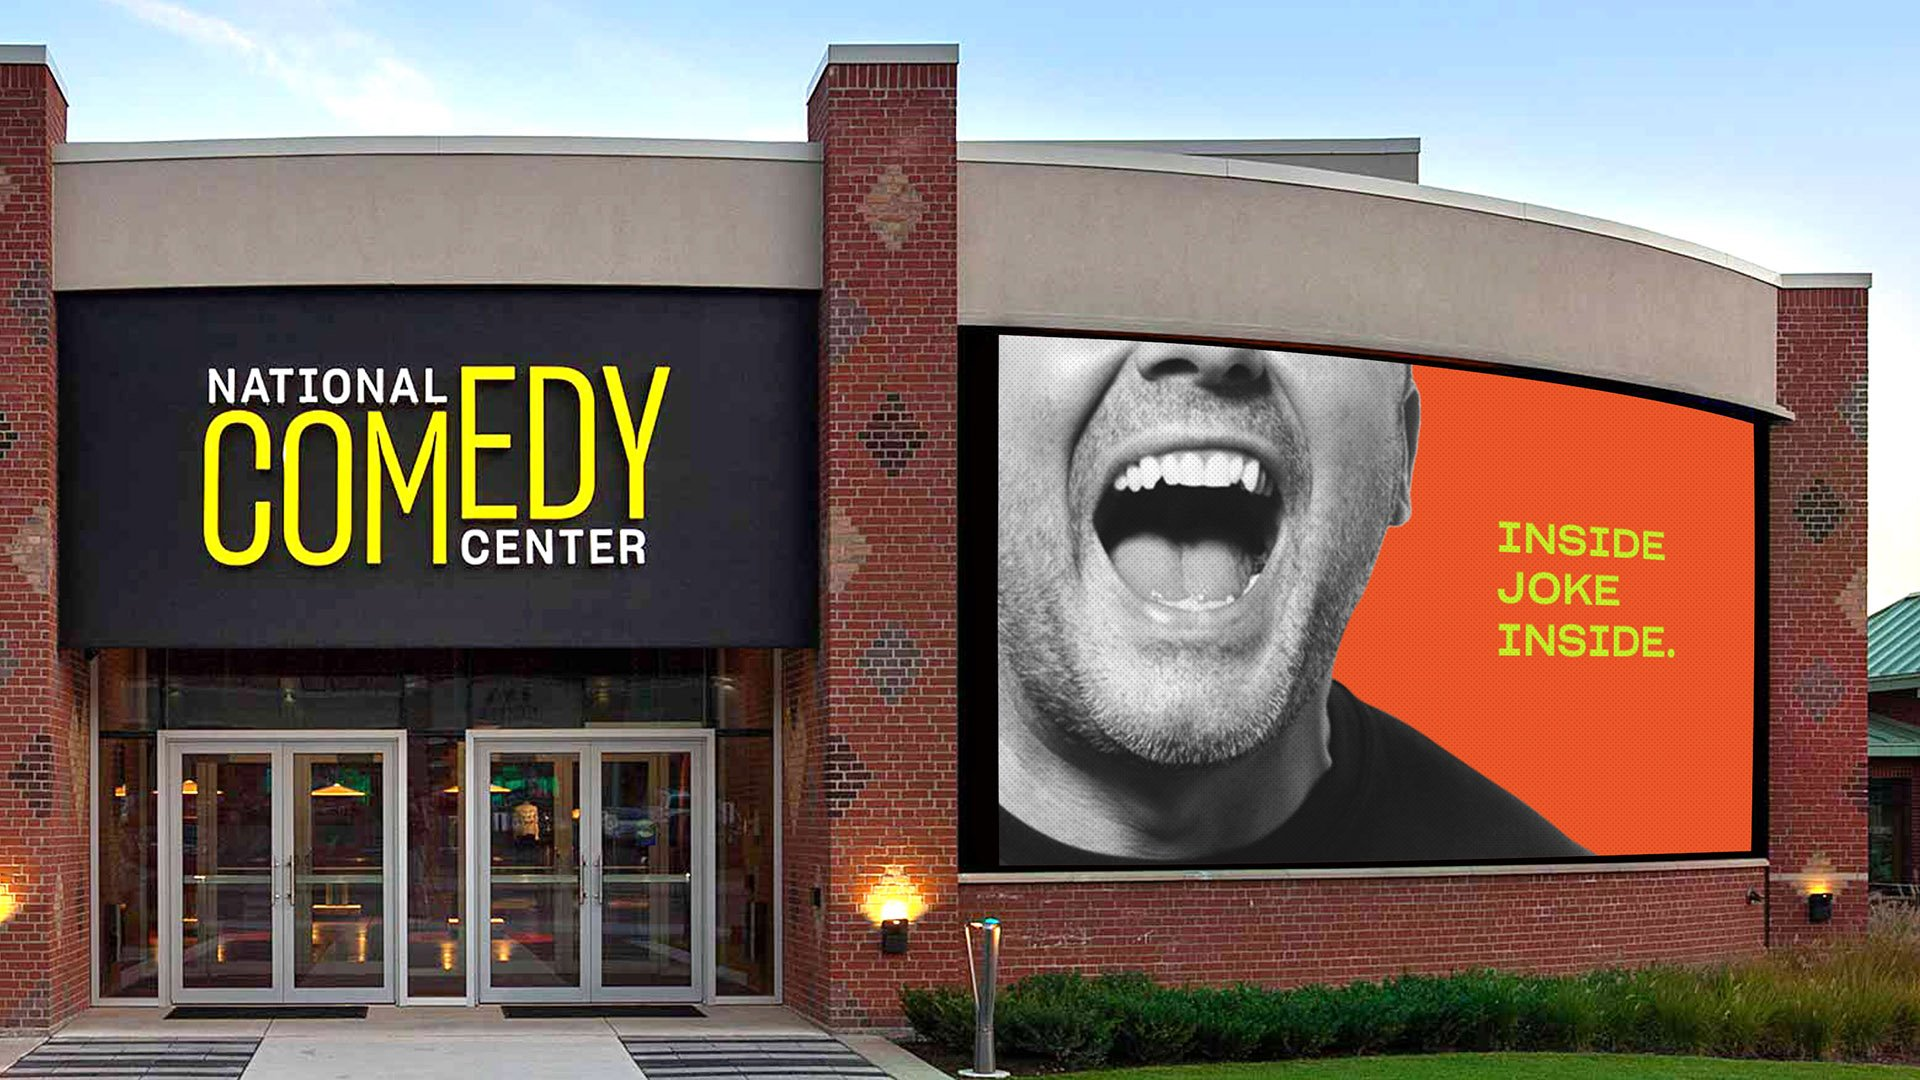 National Comedy Center entrance